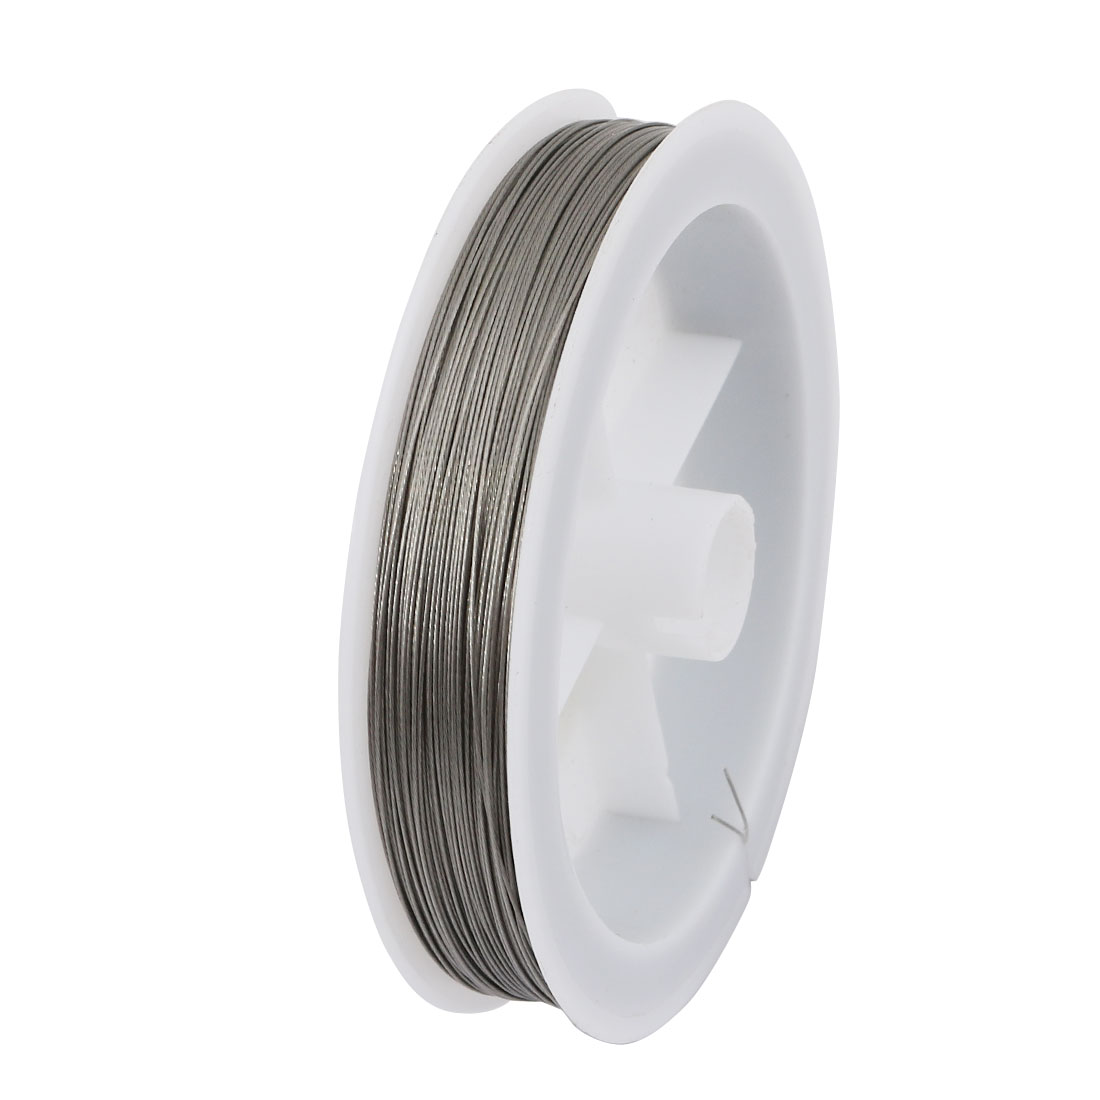 0.3mm Diameter 100 Meters Long Steel Wire Light Accessory for Crystal Bead